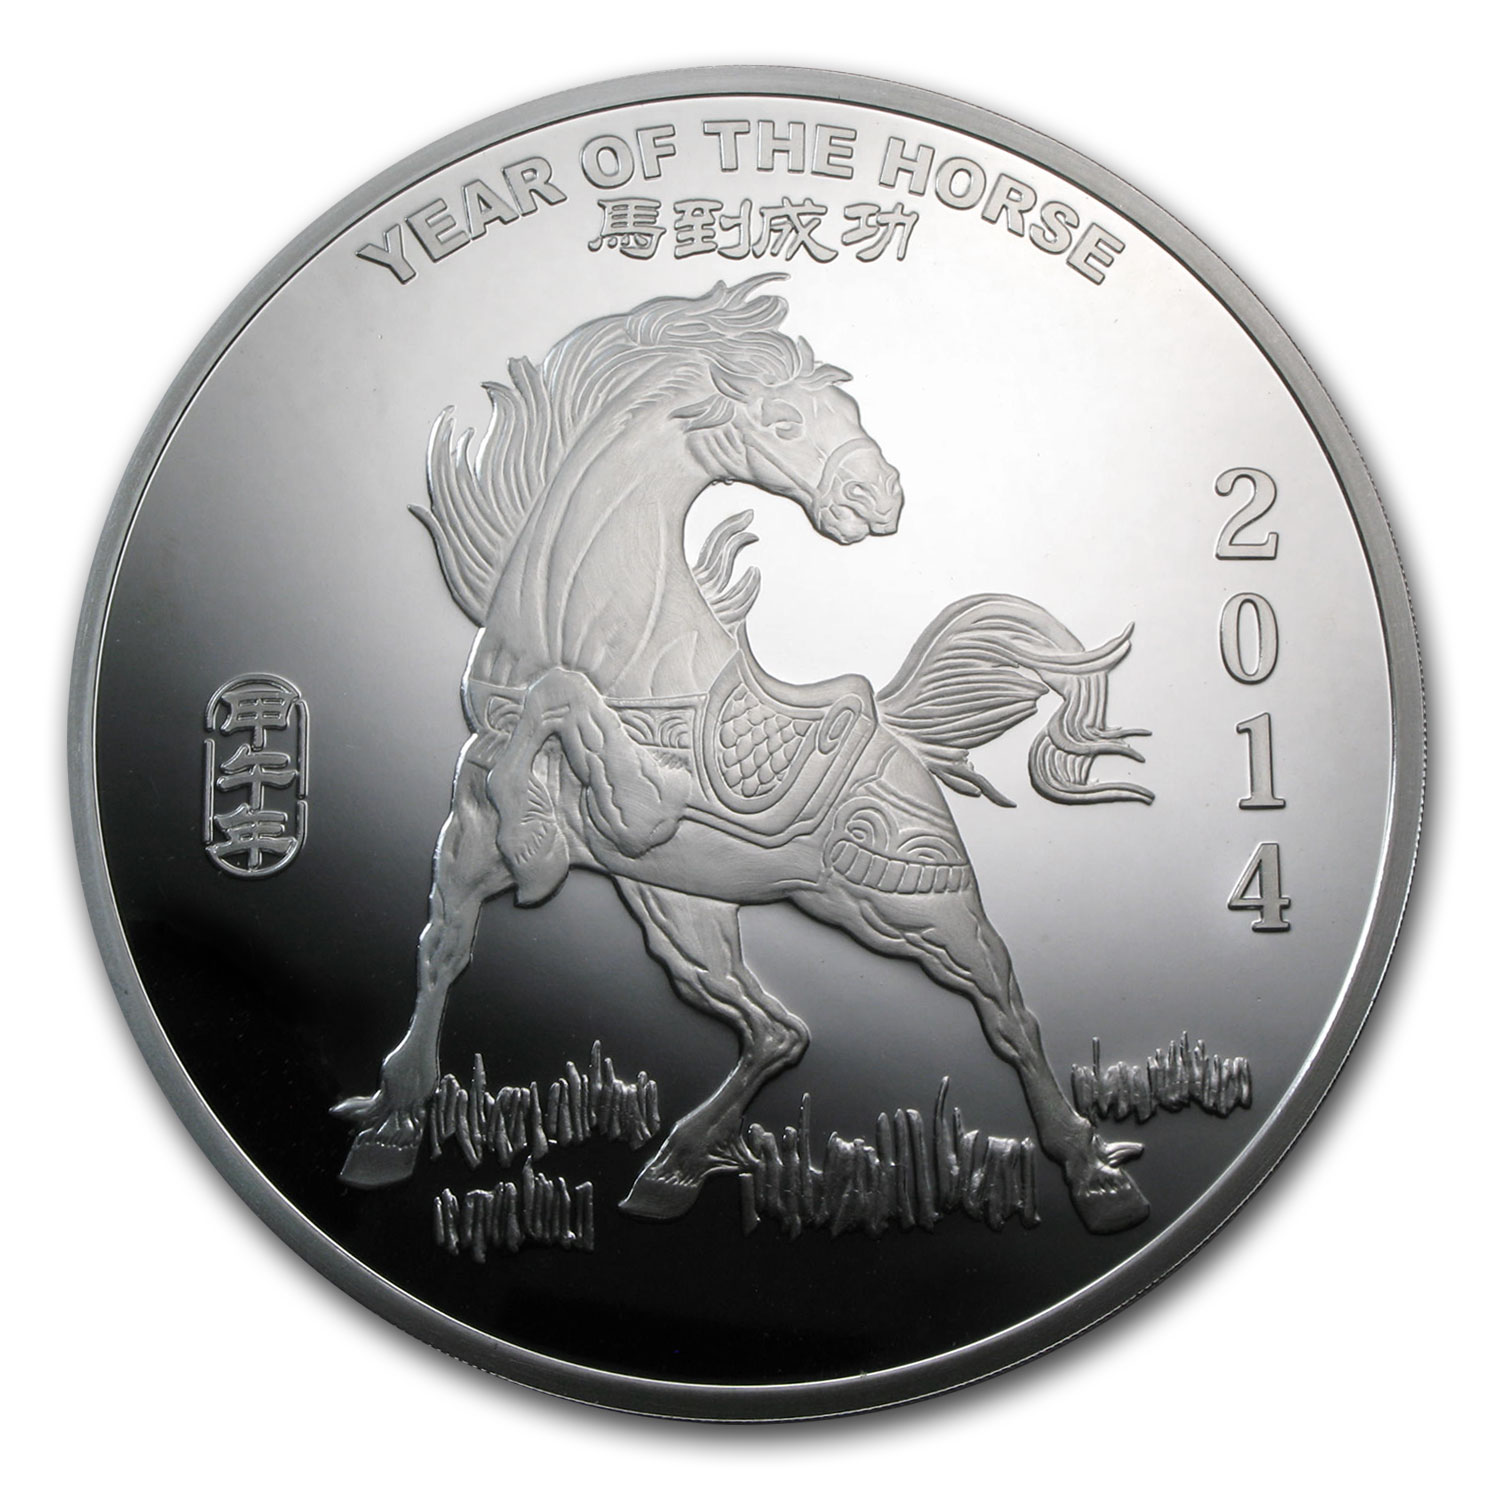 10 oz APMEX 2014 Year of the Horse Silver Round .999 Fine